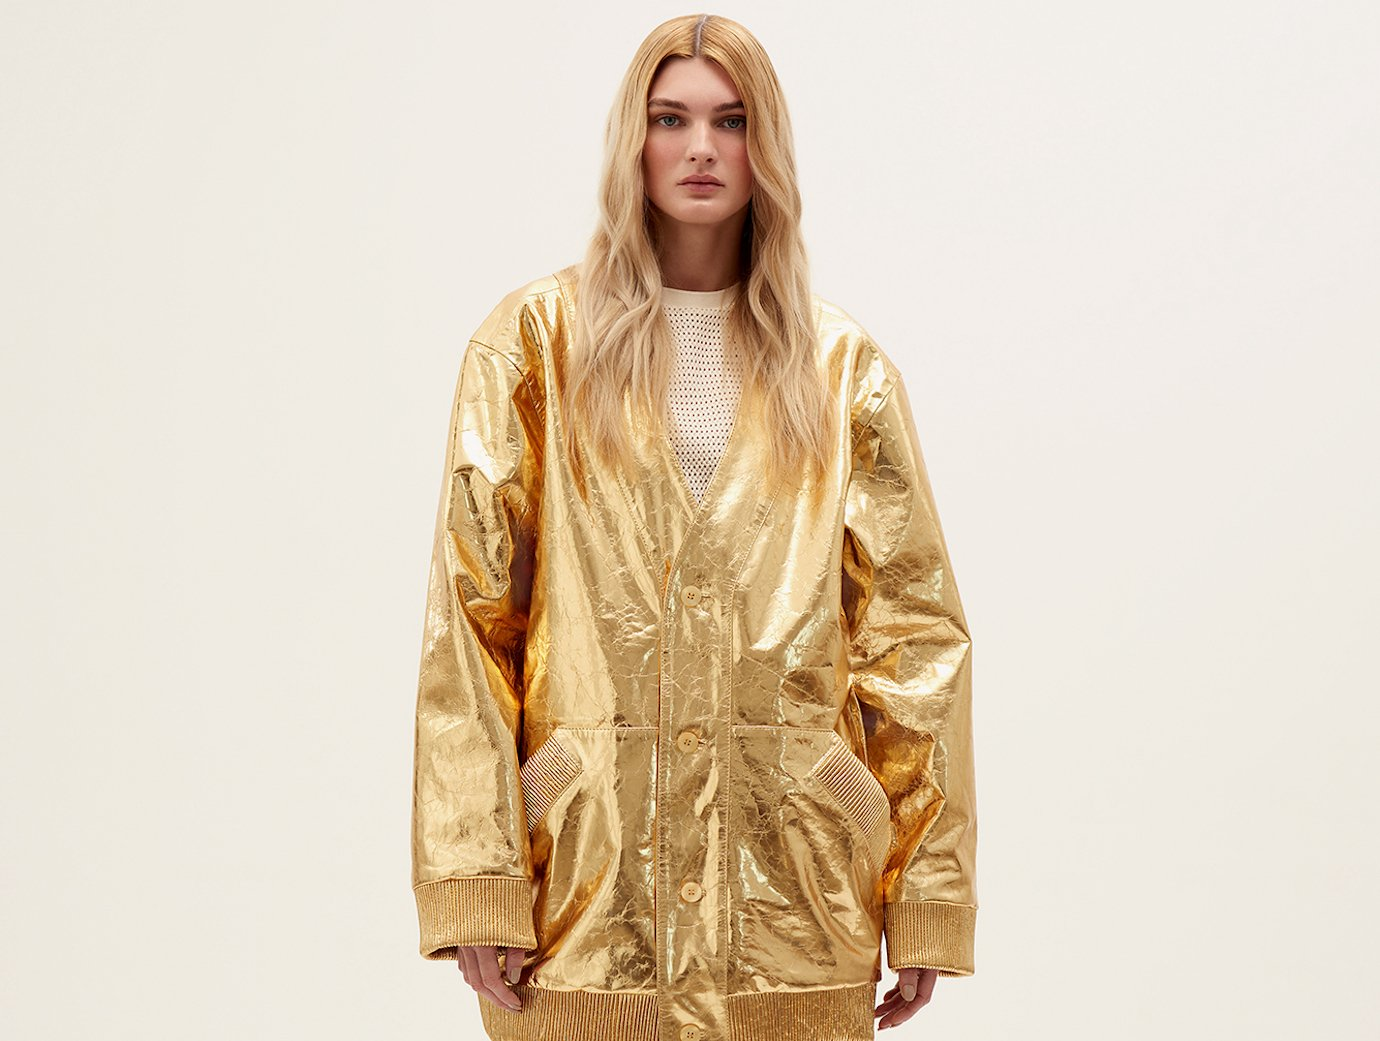 All that glitters: get your hands on sparkling leather jackets by Ukrainian brand Kulakovsky